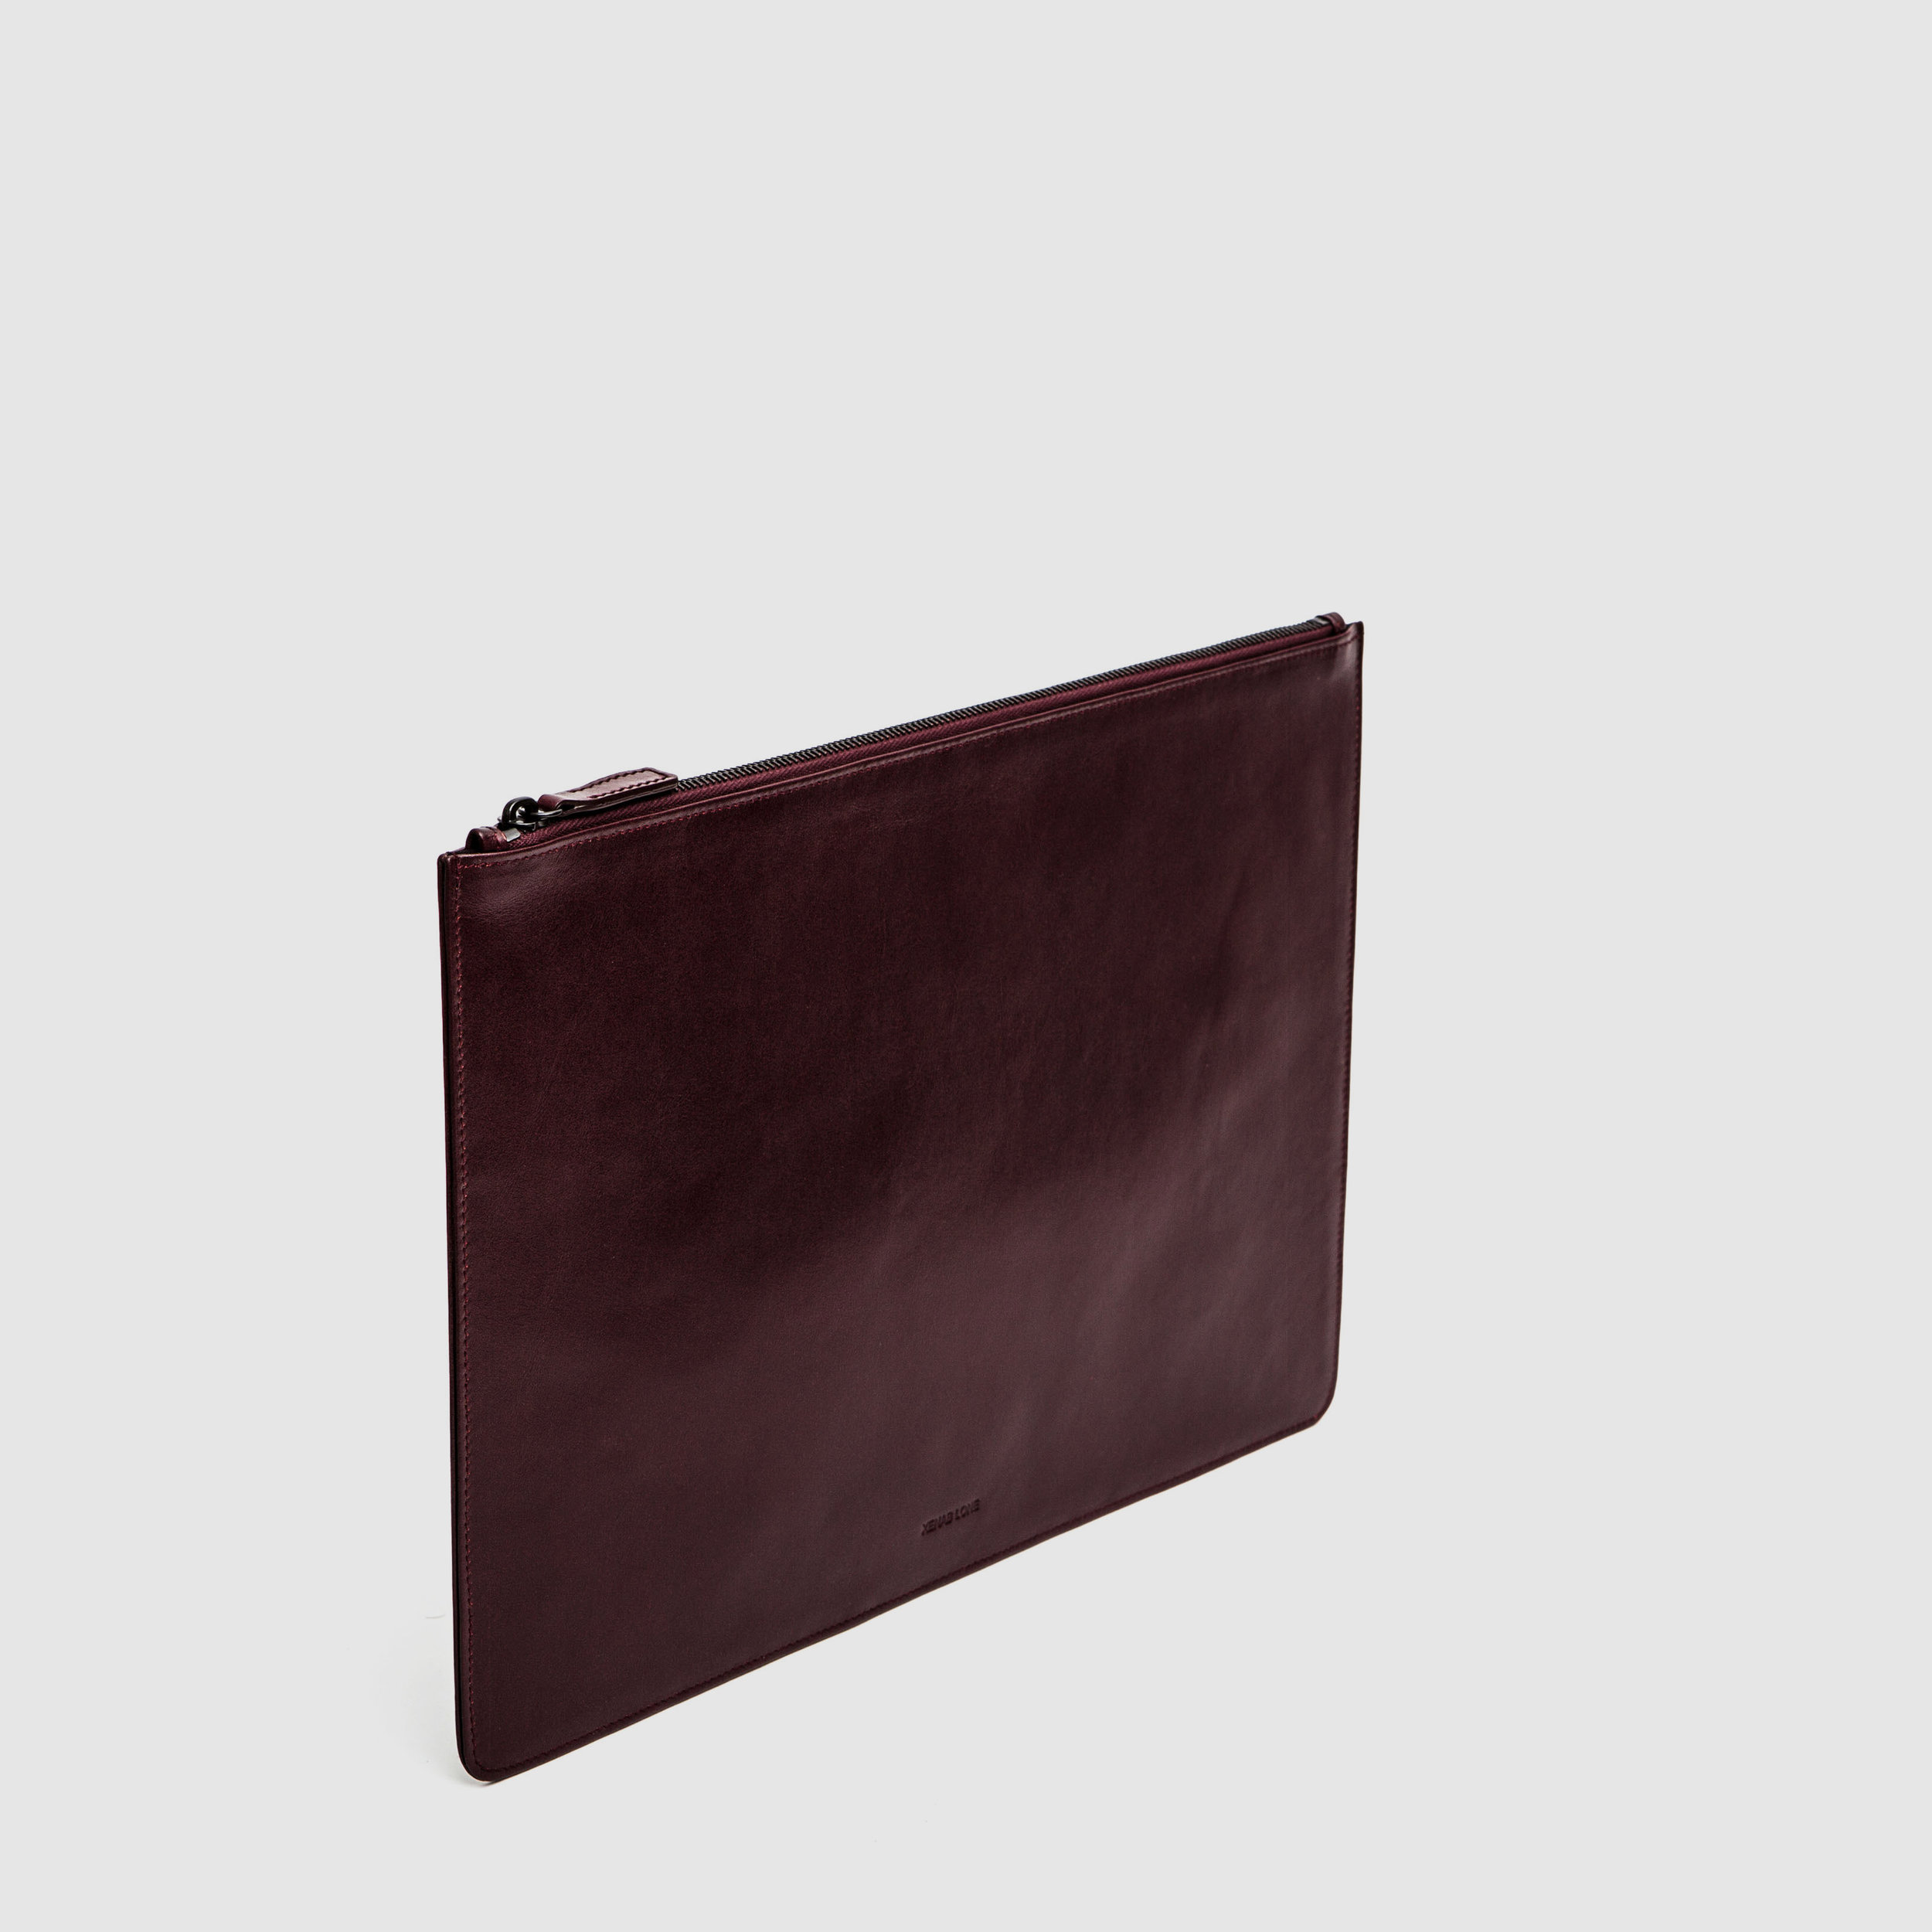 Wallets&Pouches_0001s_0000s_0004_Layer 40.jpg